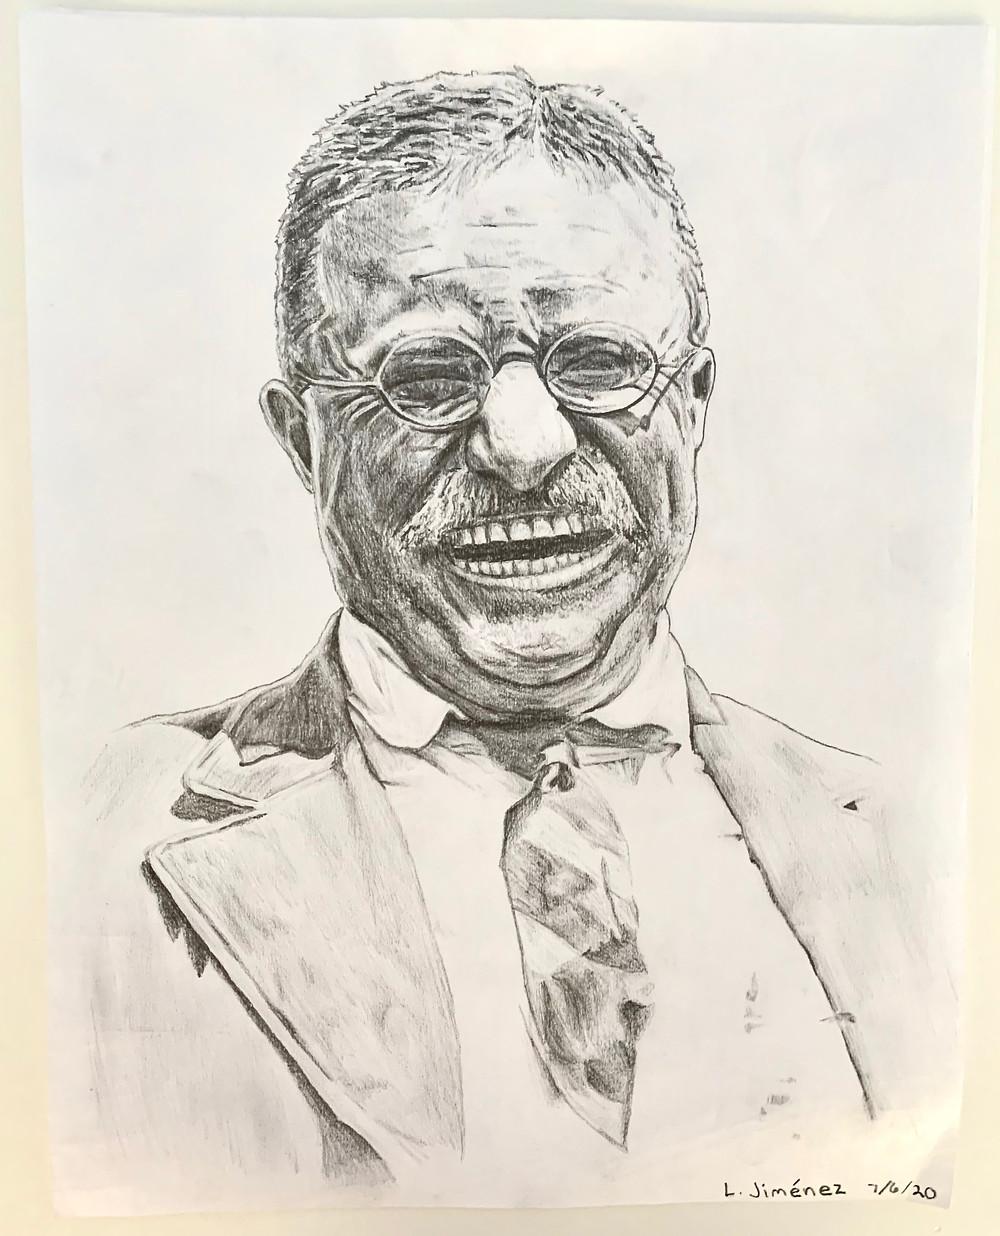 A pencil sketch of Theodore Roosevelt laughing.